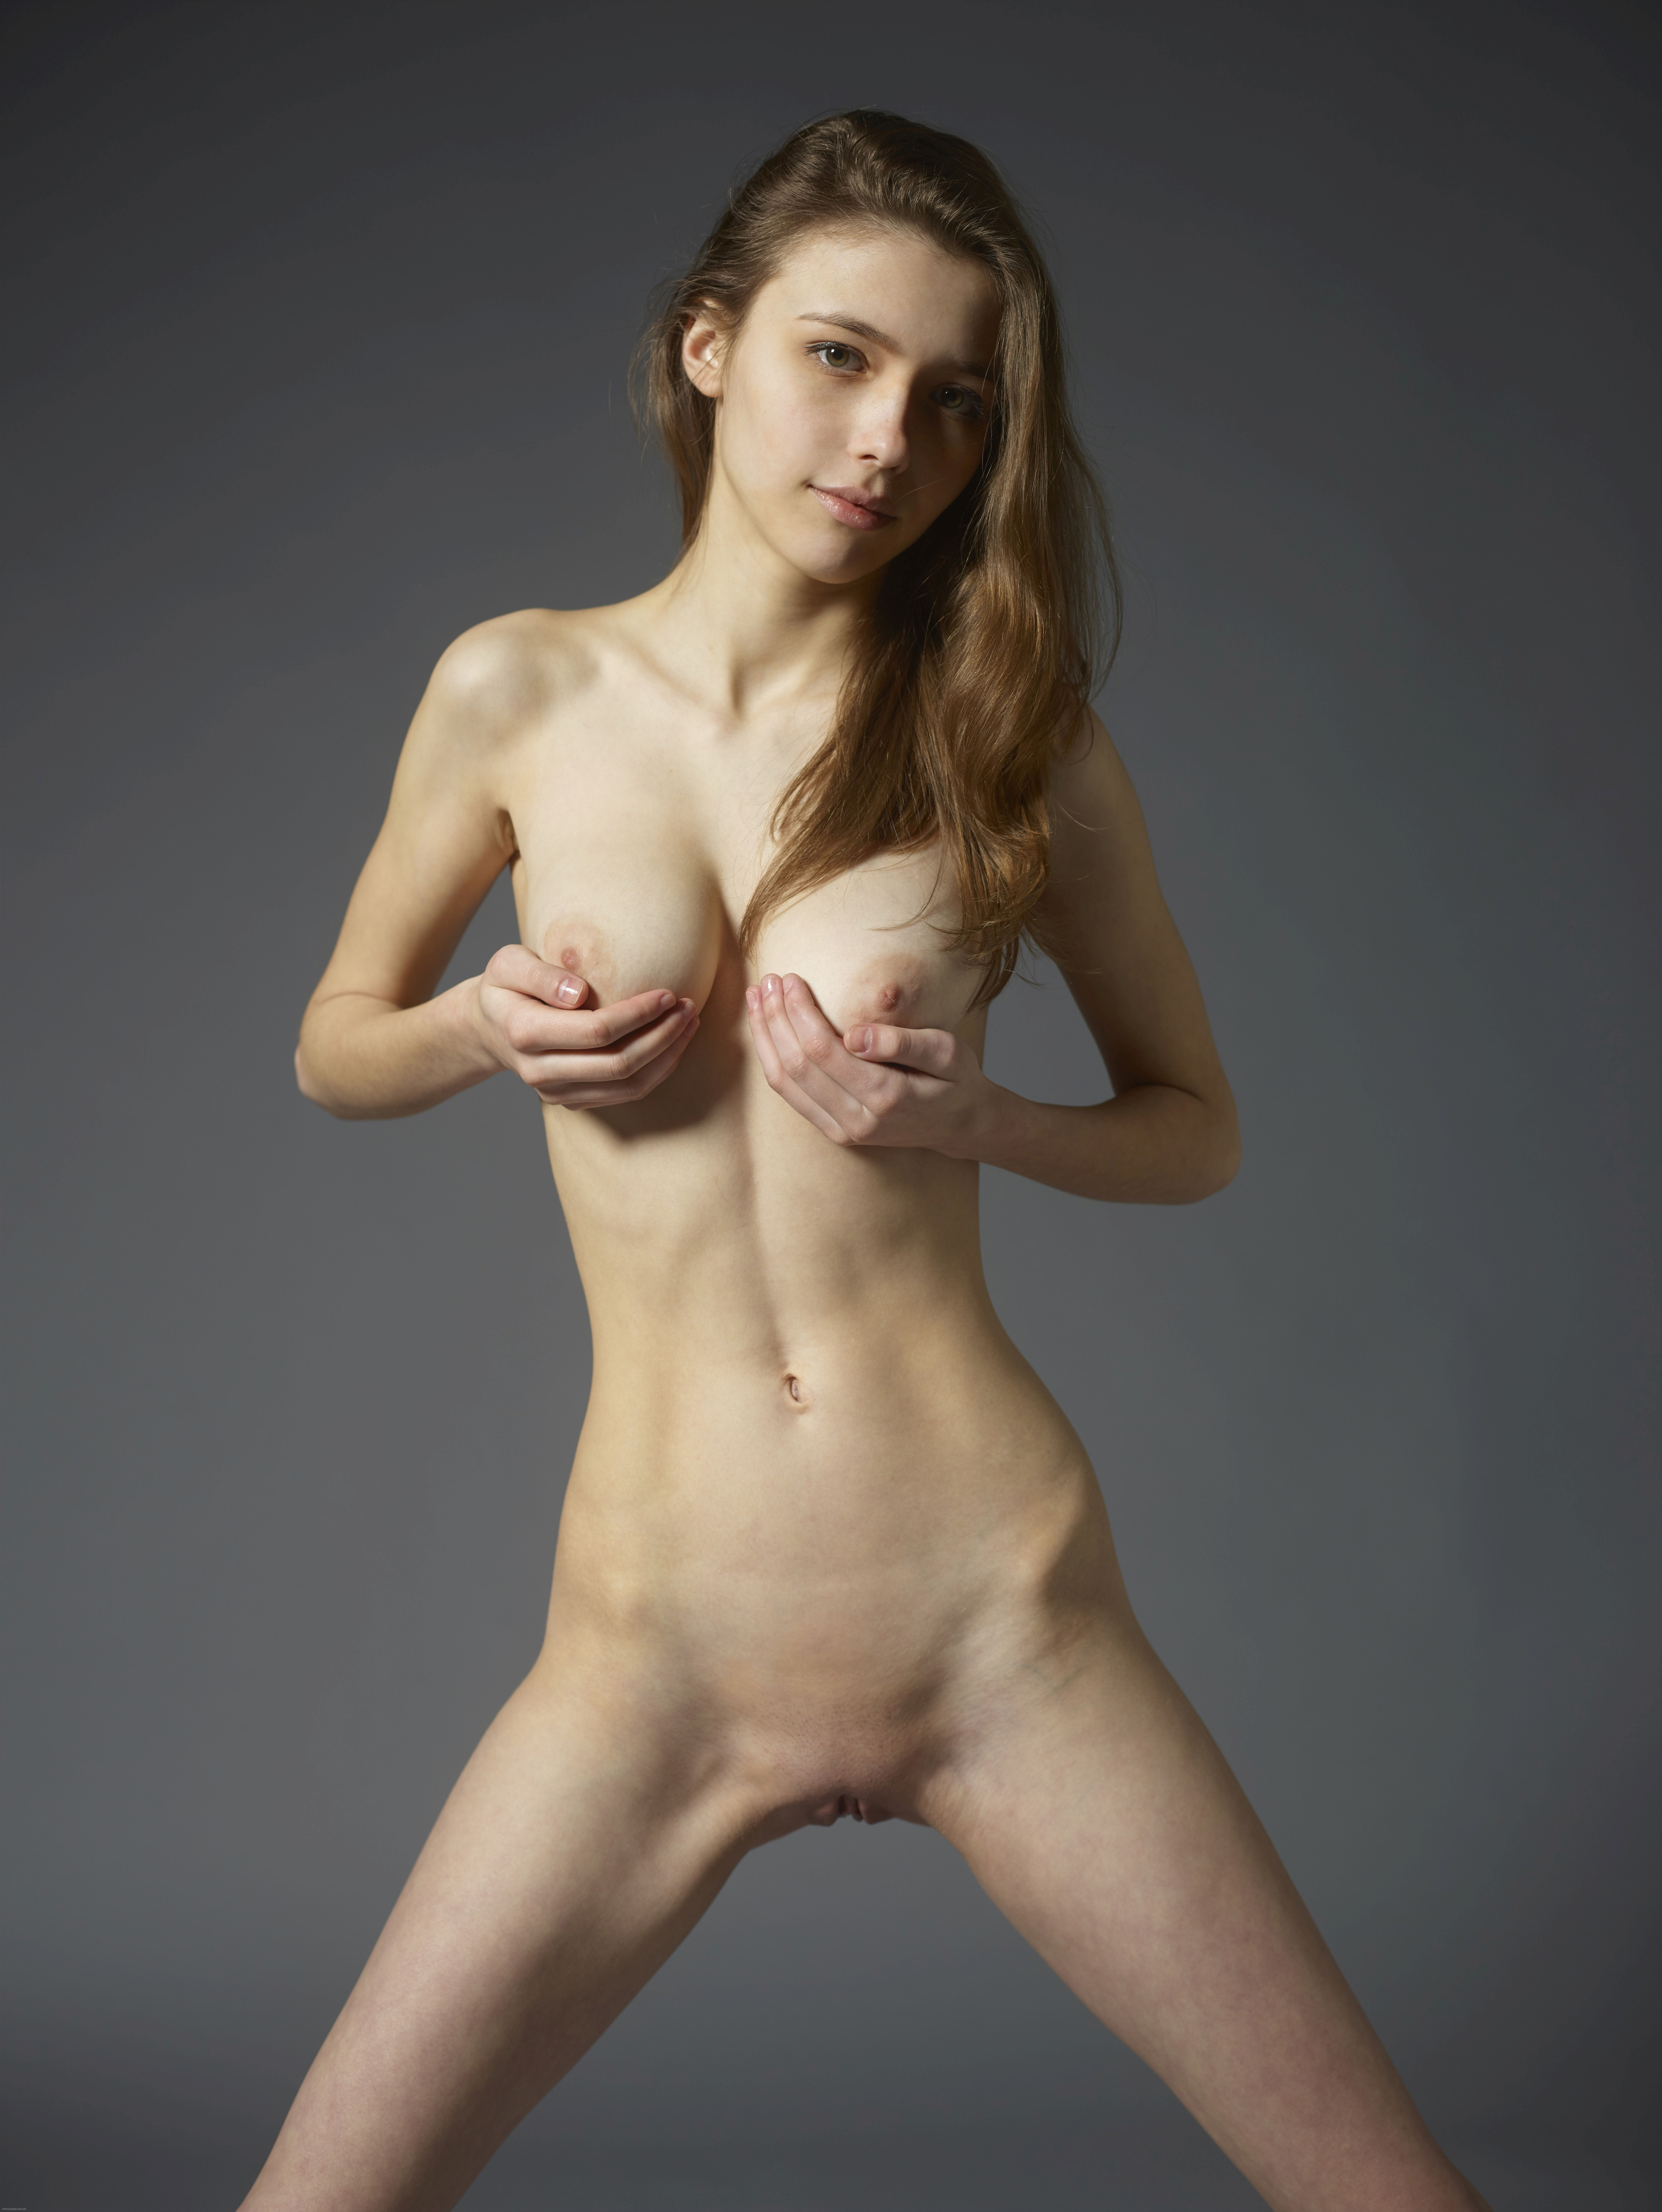 Super hot blonde skinny girl with amazing body nice tits 6